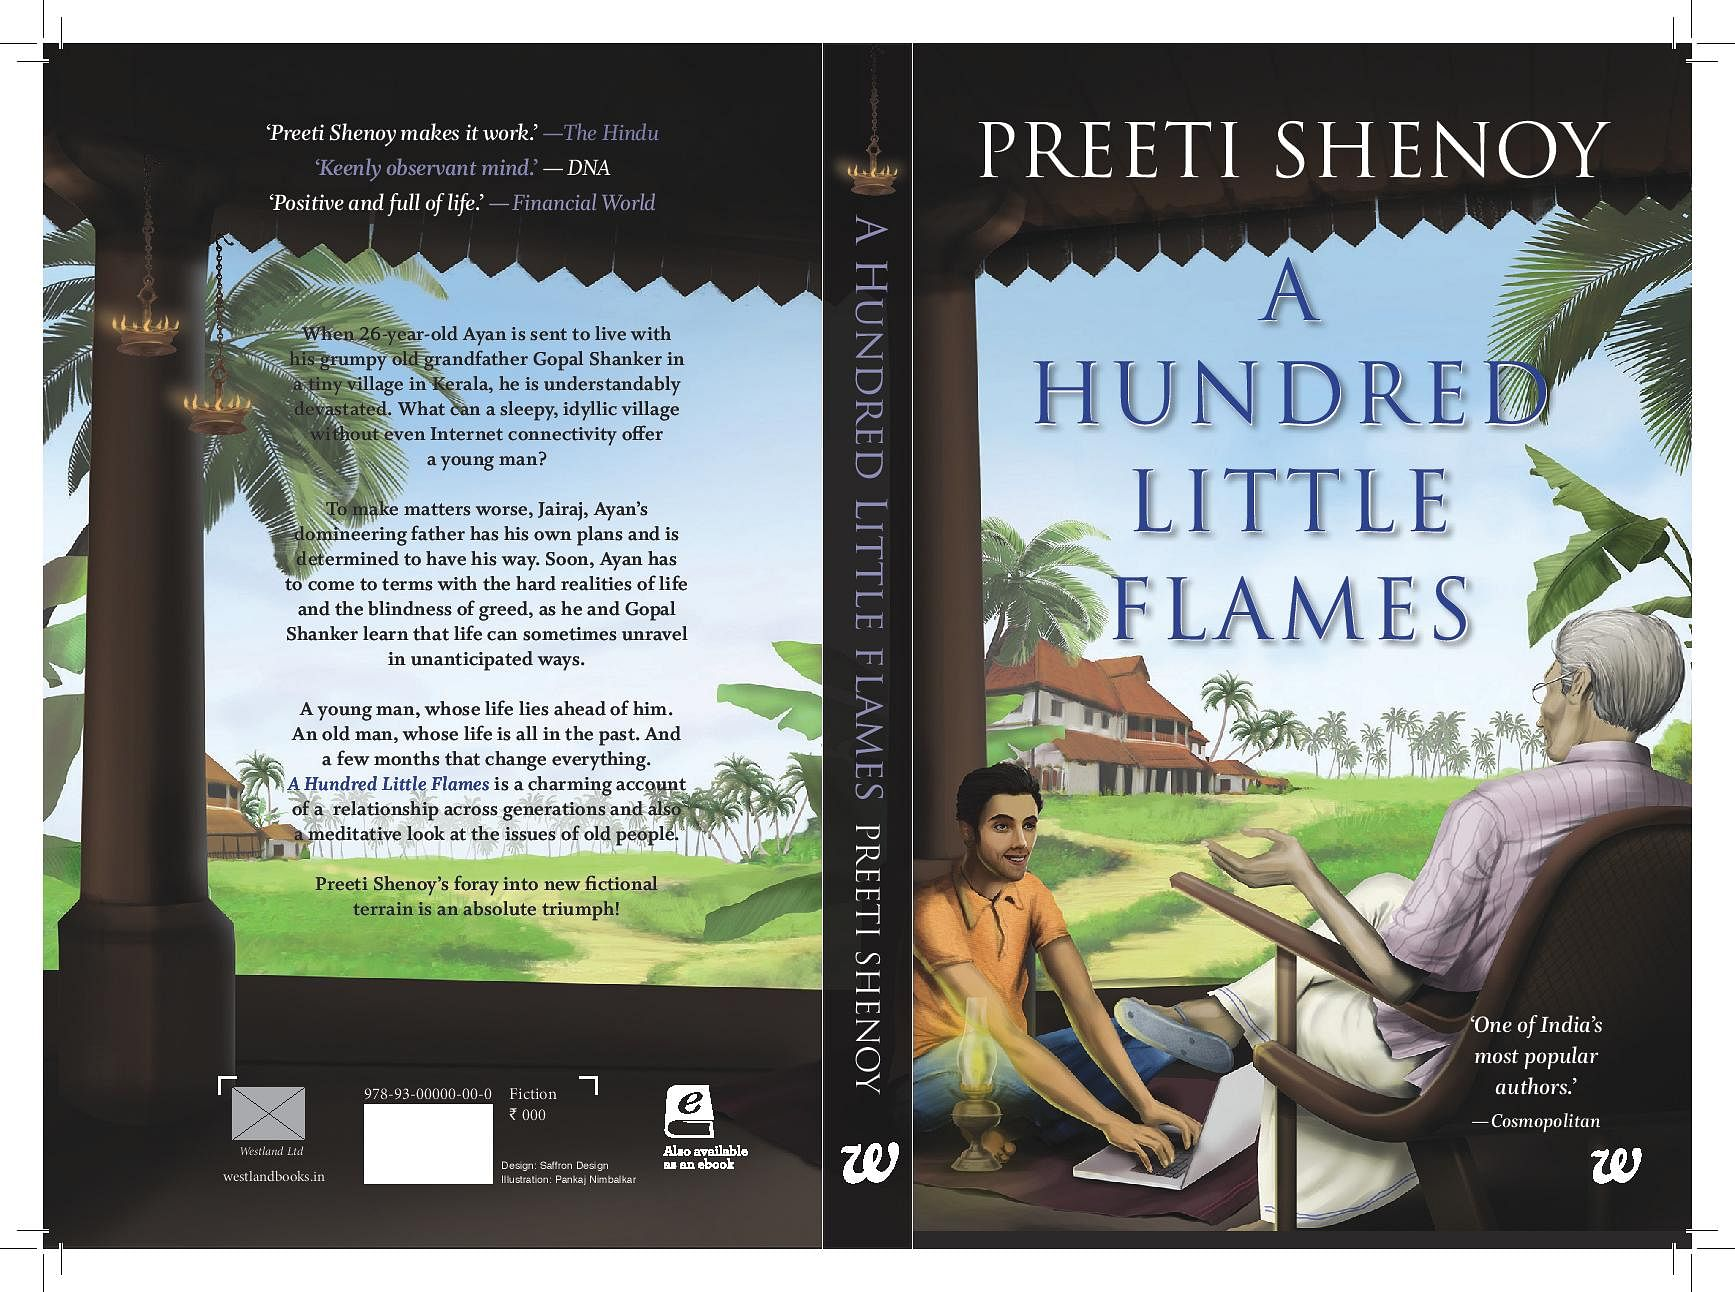 Interview] Bestselling author Preeti Shenoy, on how she